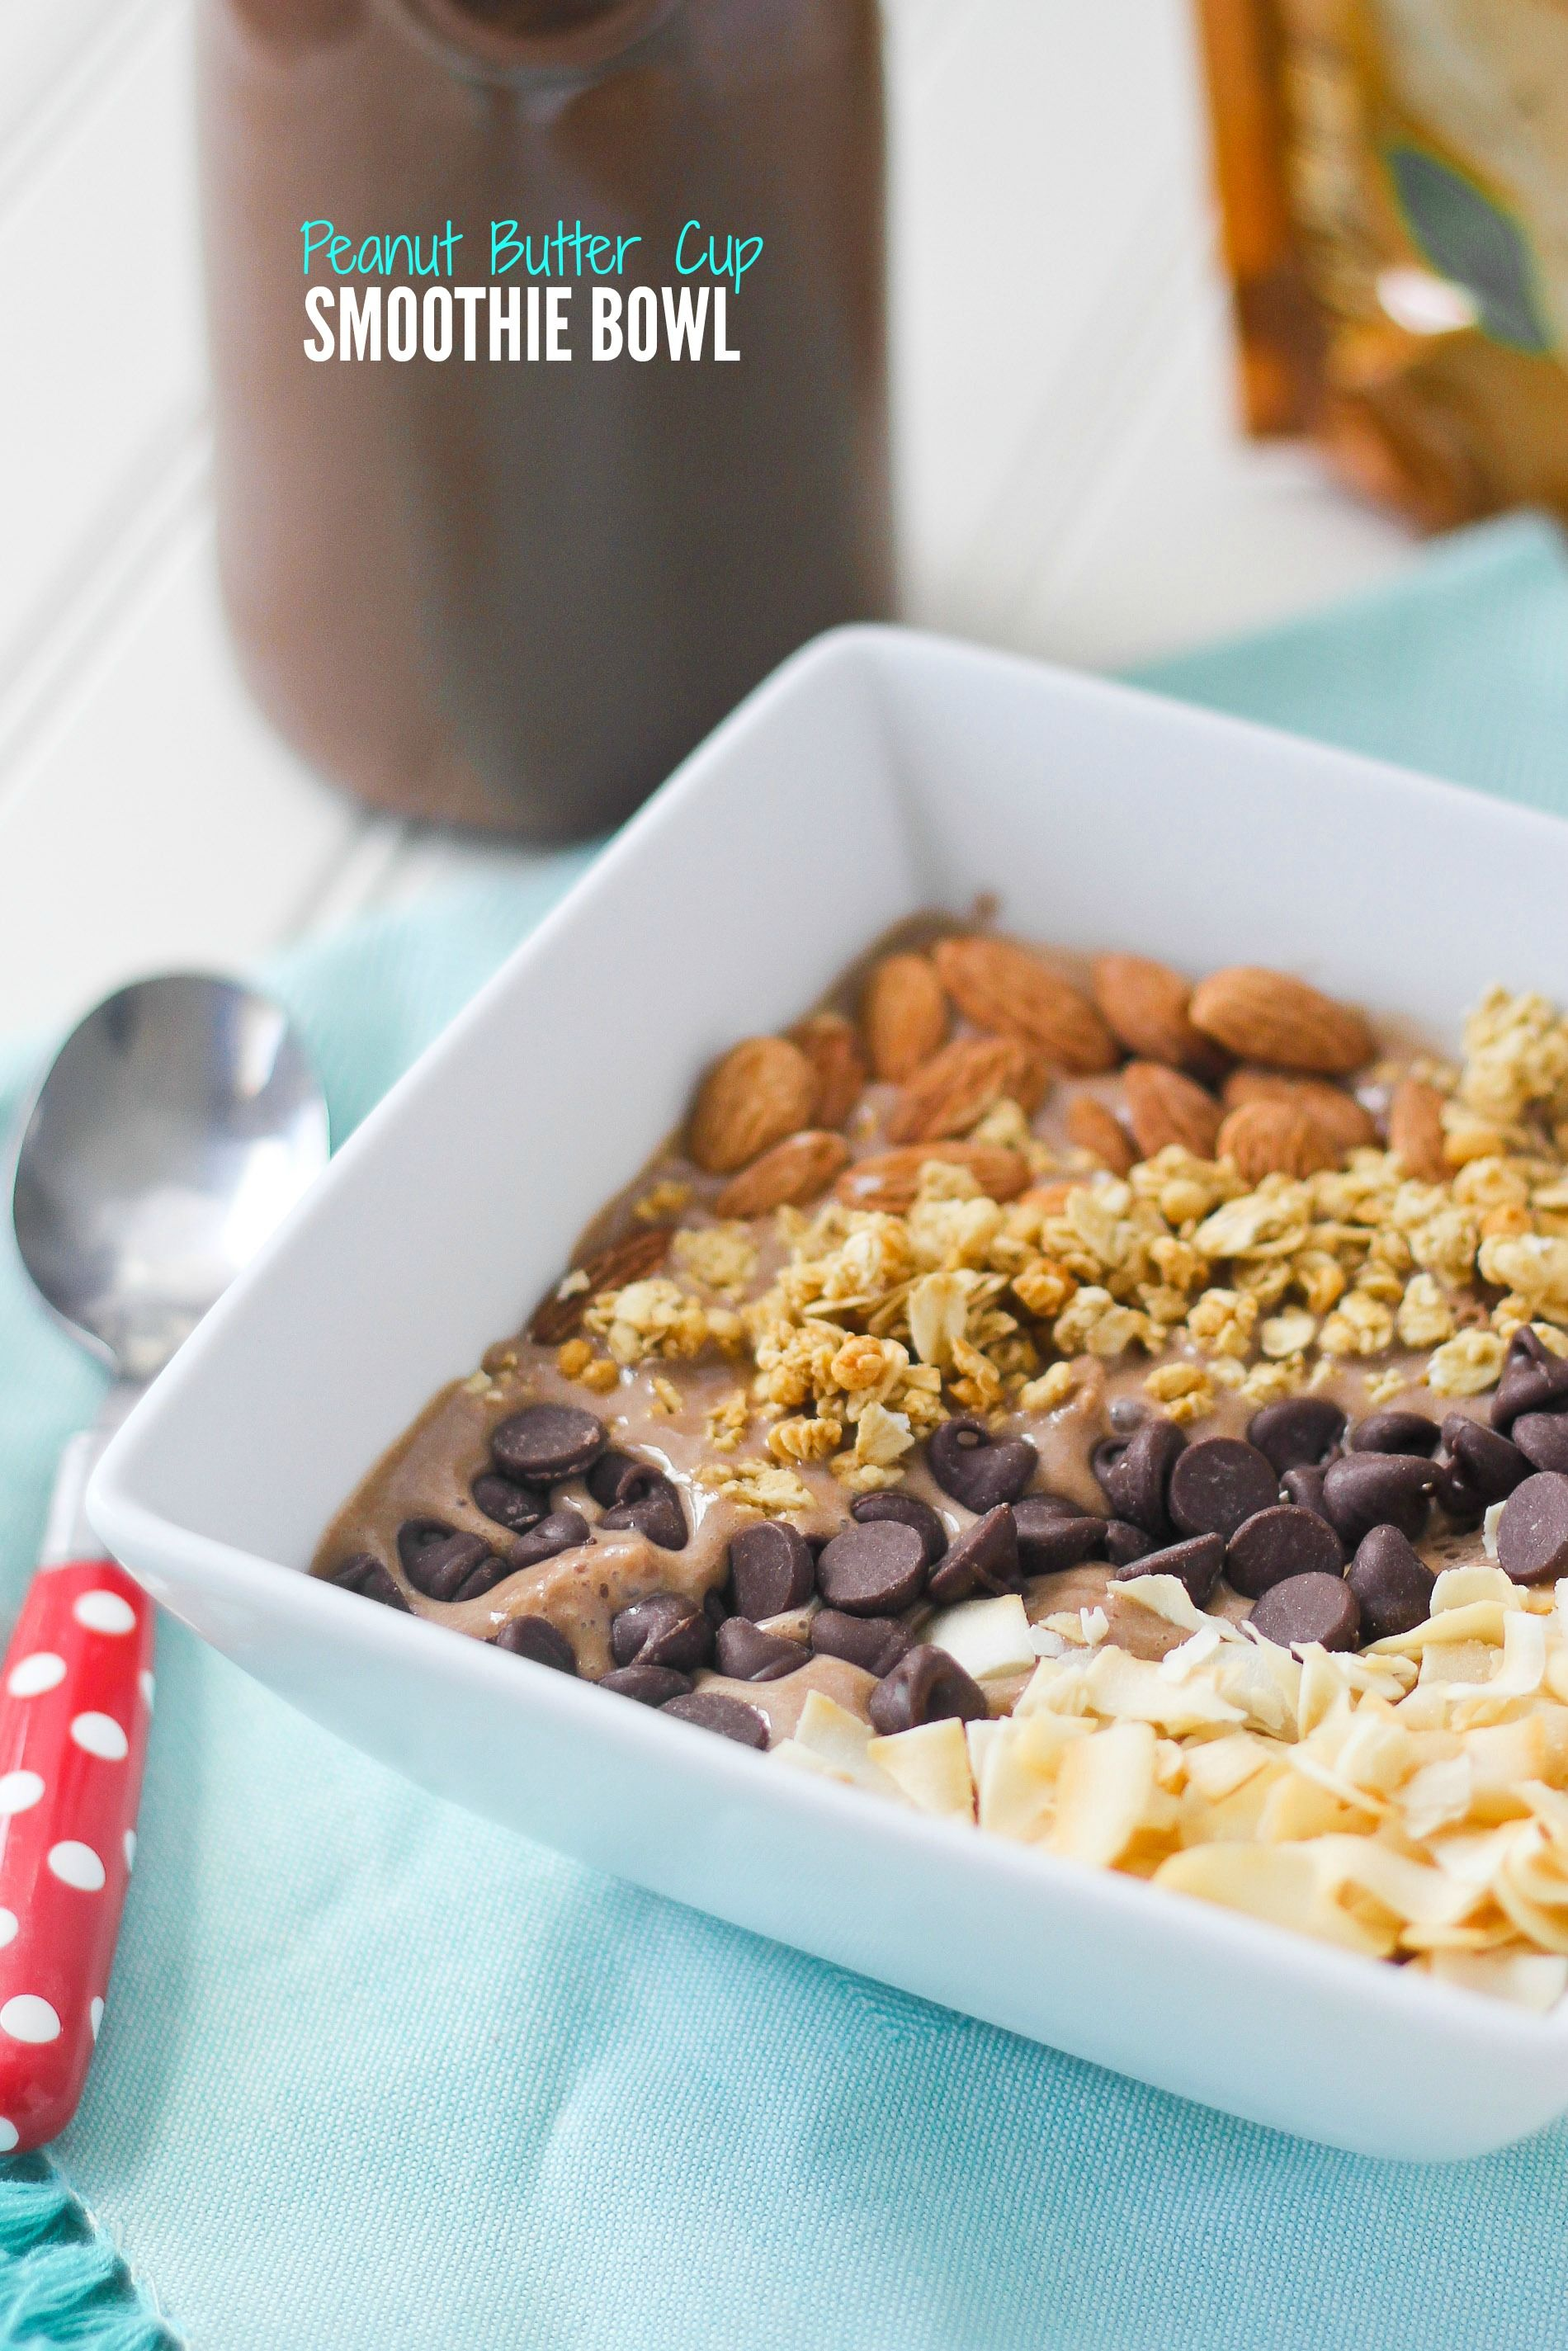 A Peanut Butter Cup Smoothie Bowl is the perfect quick breakfast to get you through the day. It's got rich chocolate peanut butter flavor and is packed with protein. #ad